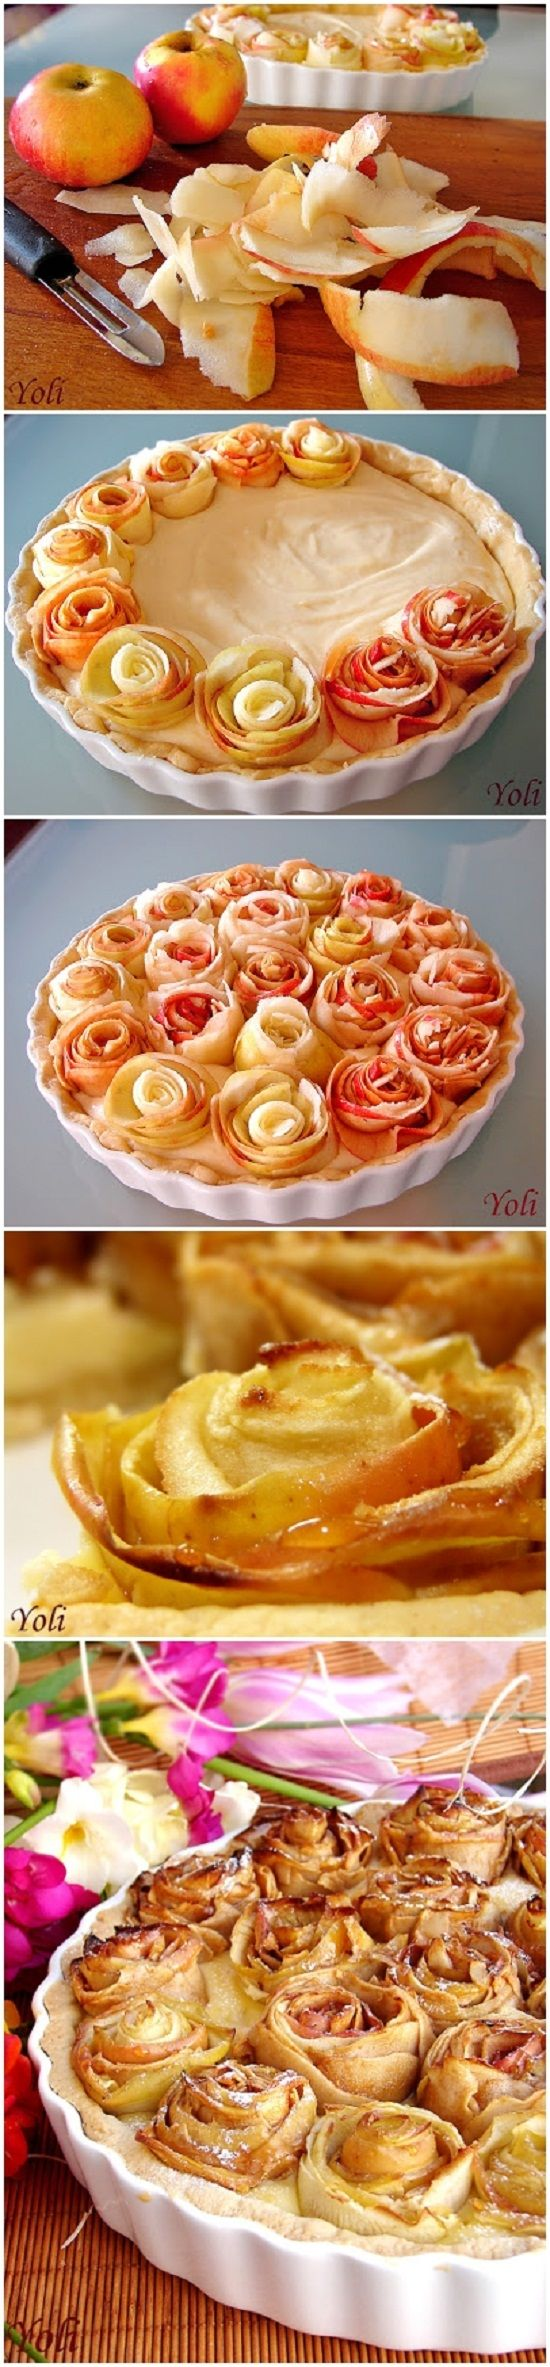 Apple pie with roses: